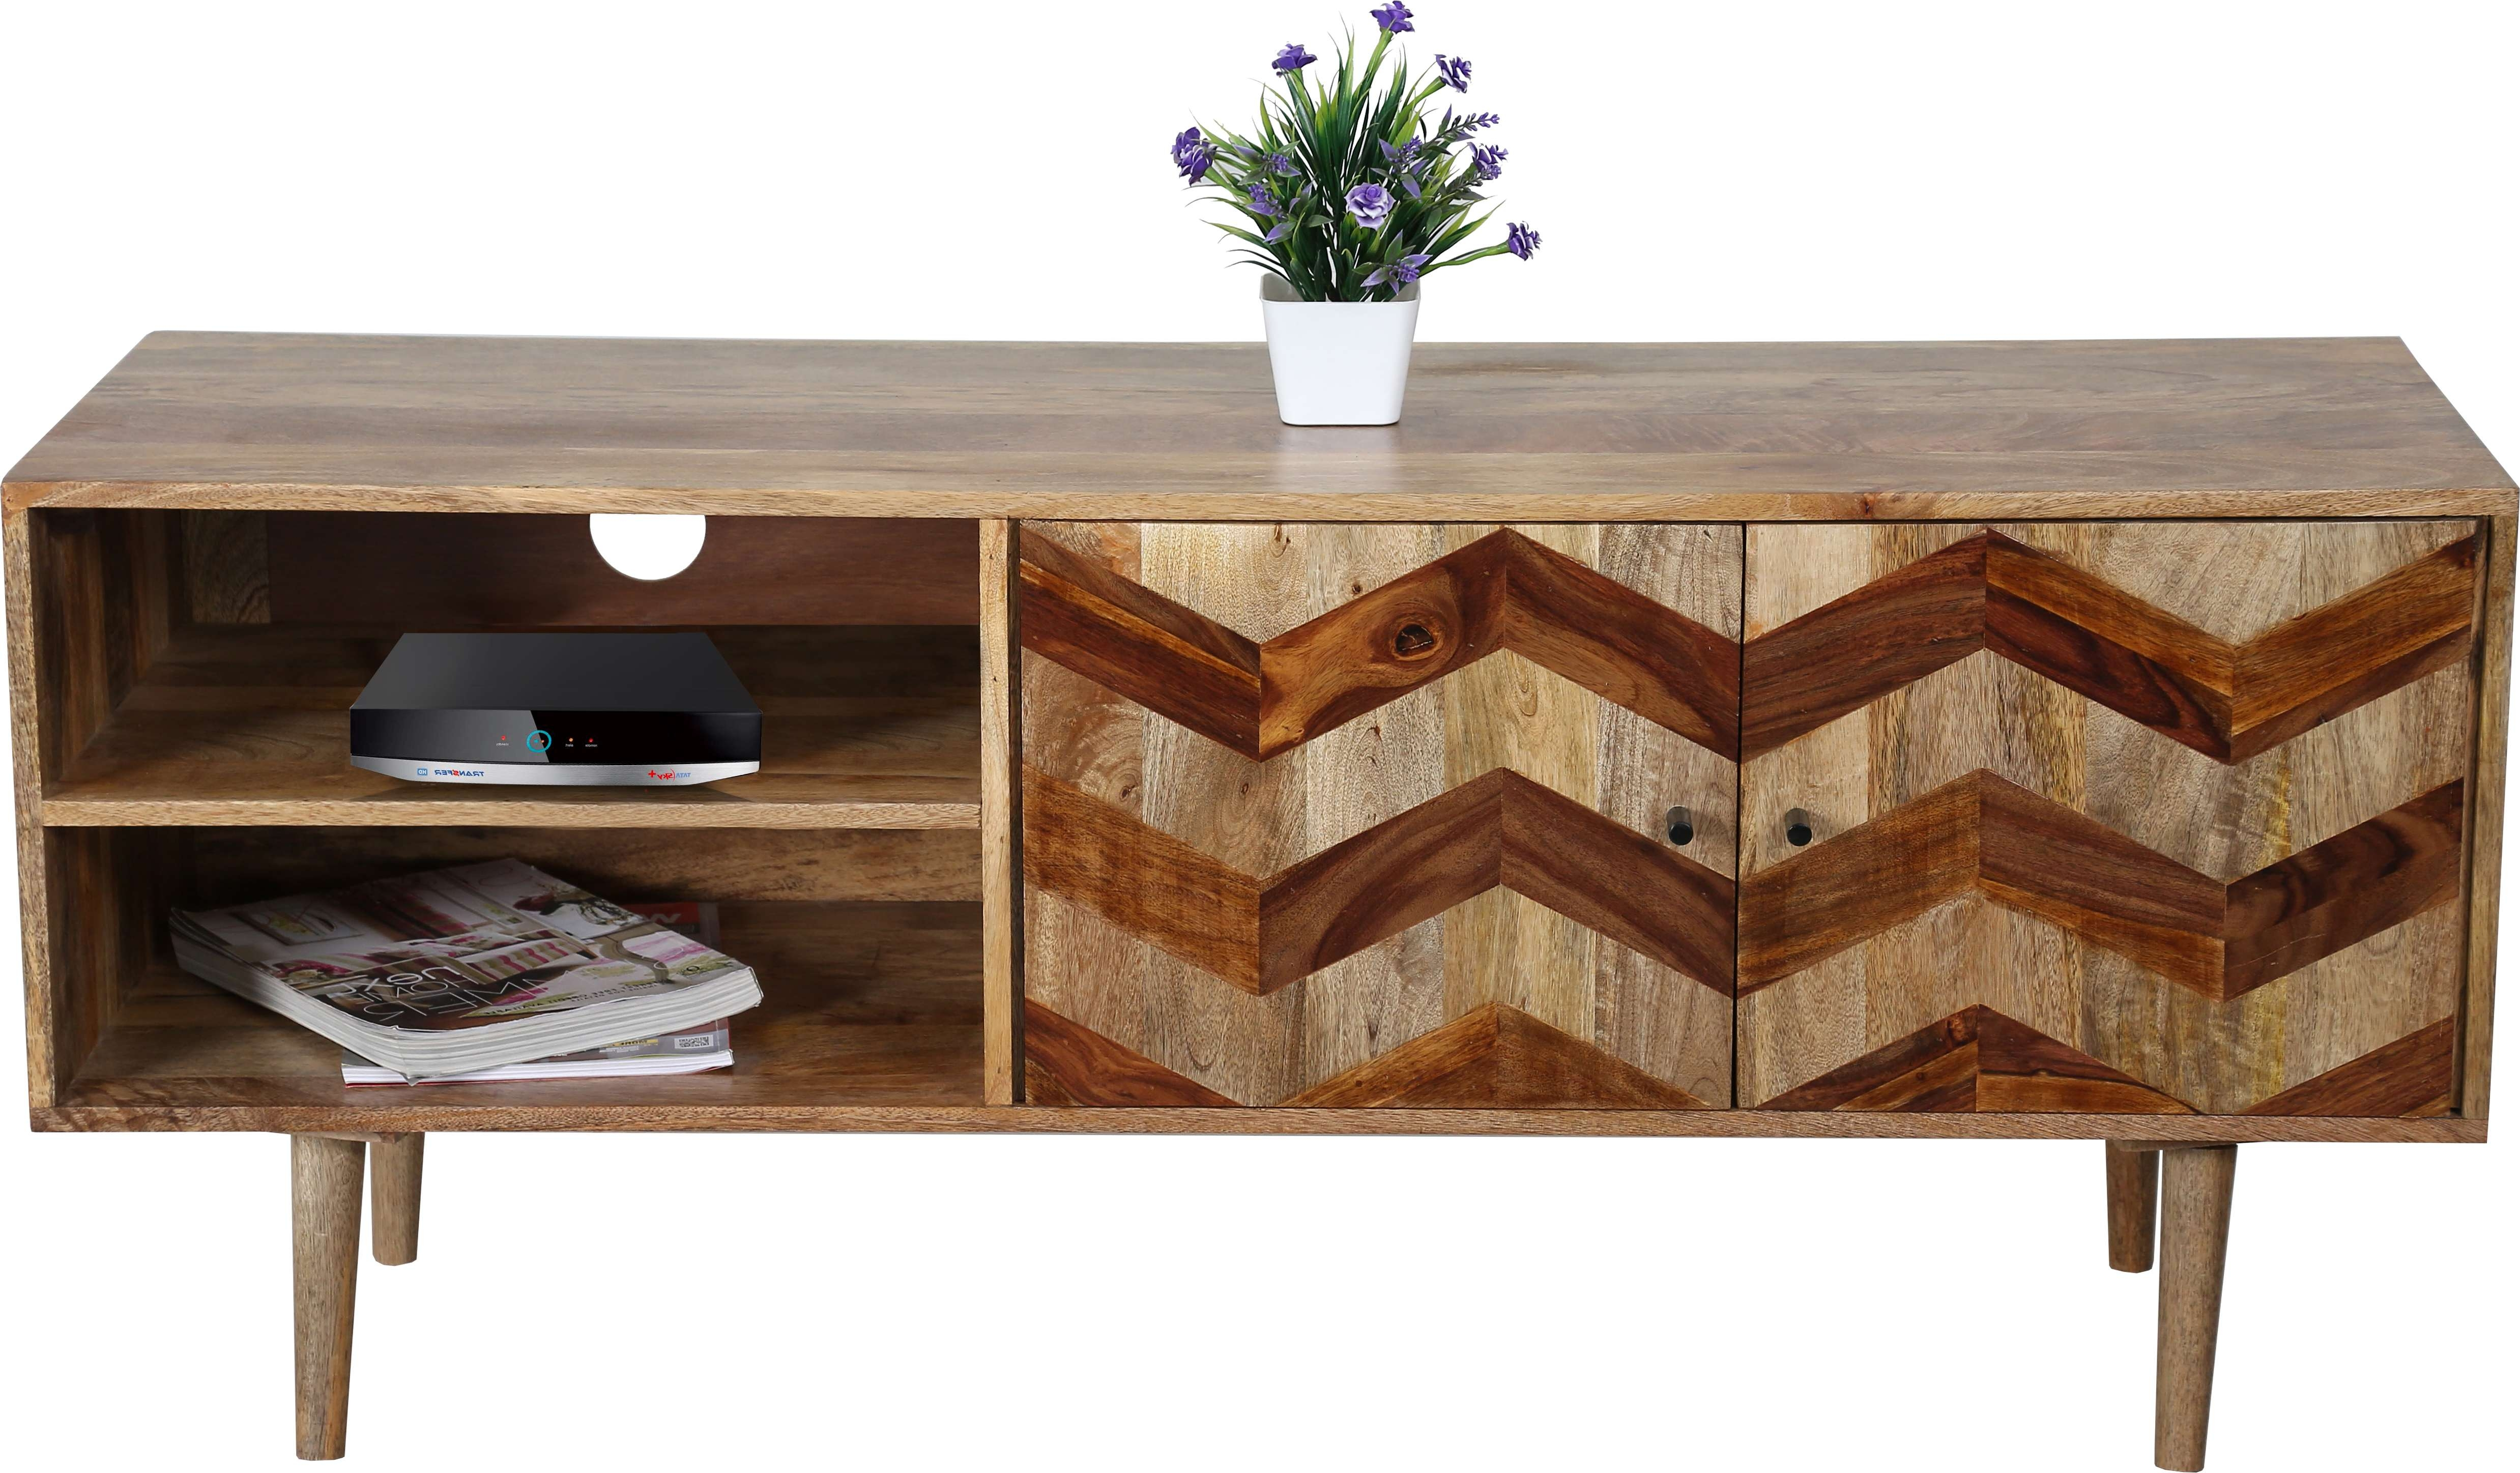 Zigzag Themed Tv Cabinet In Light Mango Wood With Wooden Legs Within Mango Wood Tv Cabinets (View 20 of 20)